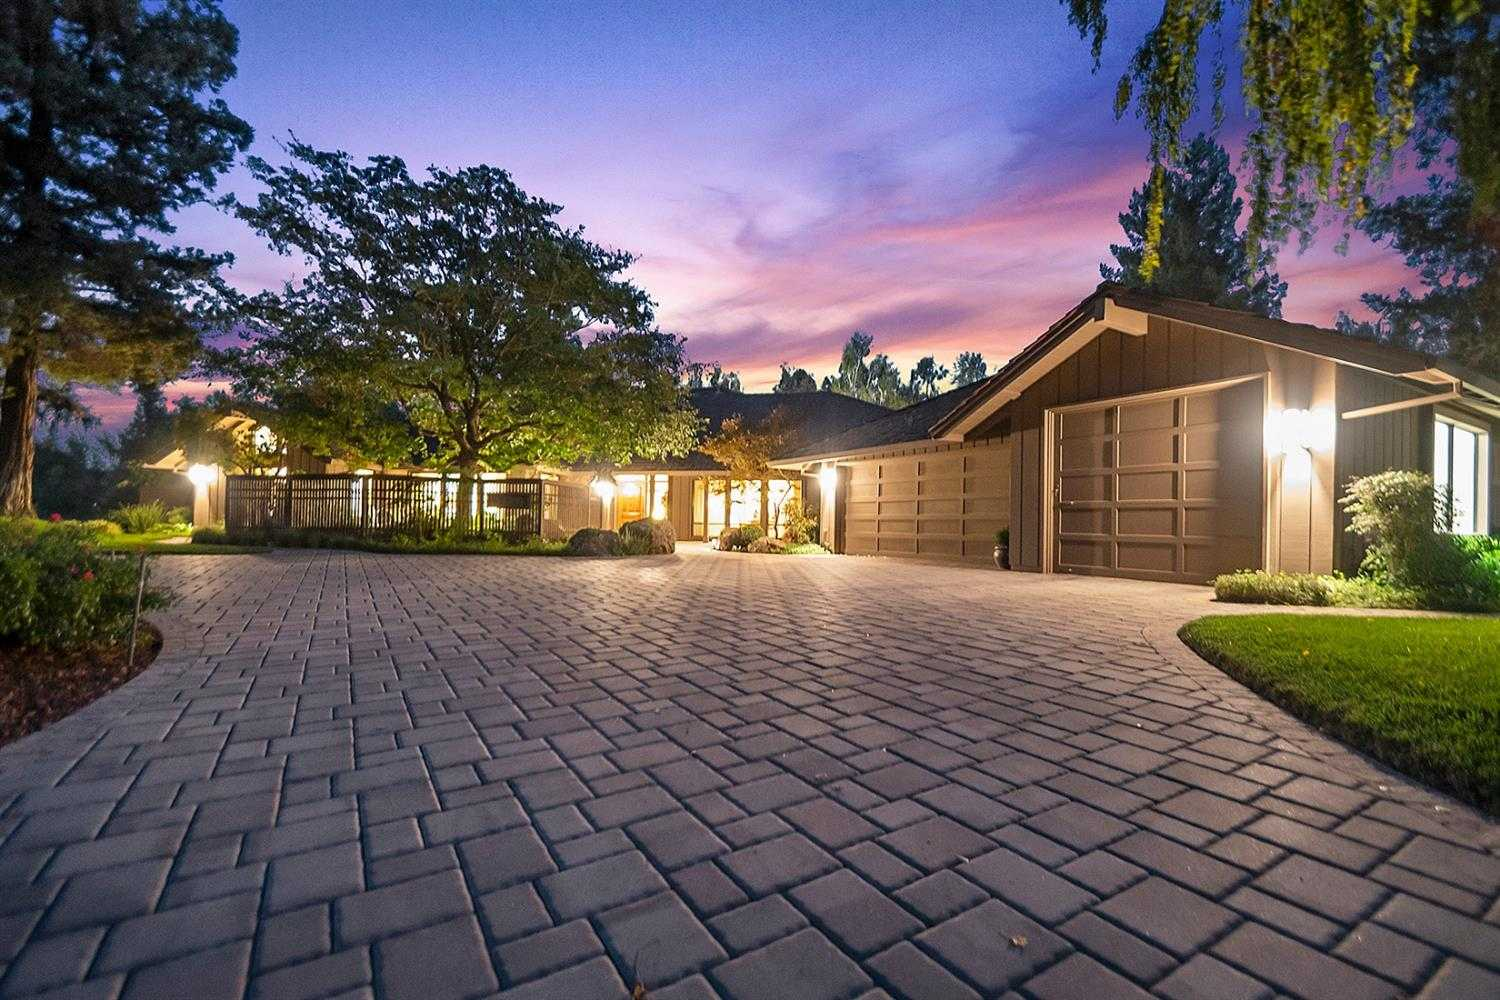 $1,799,000 - 4Br/4Ba -  for Sale in El Macero, El Macero